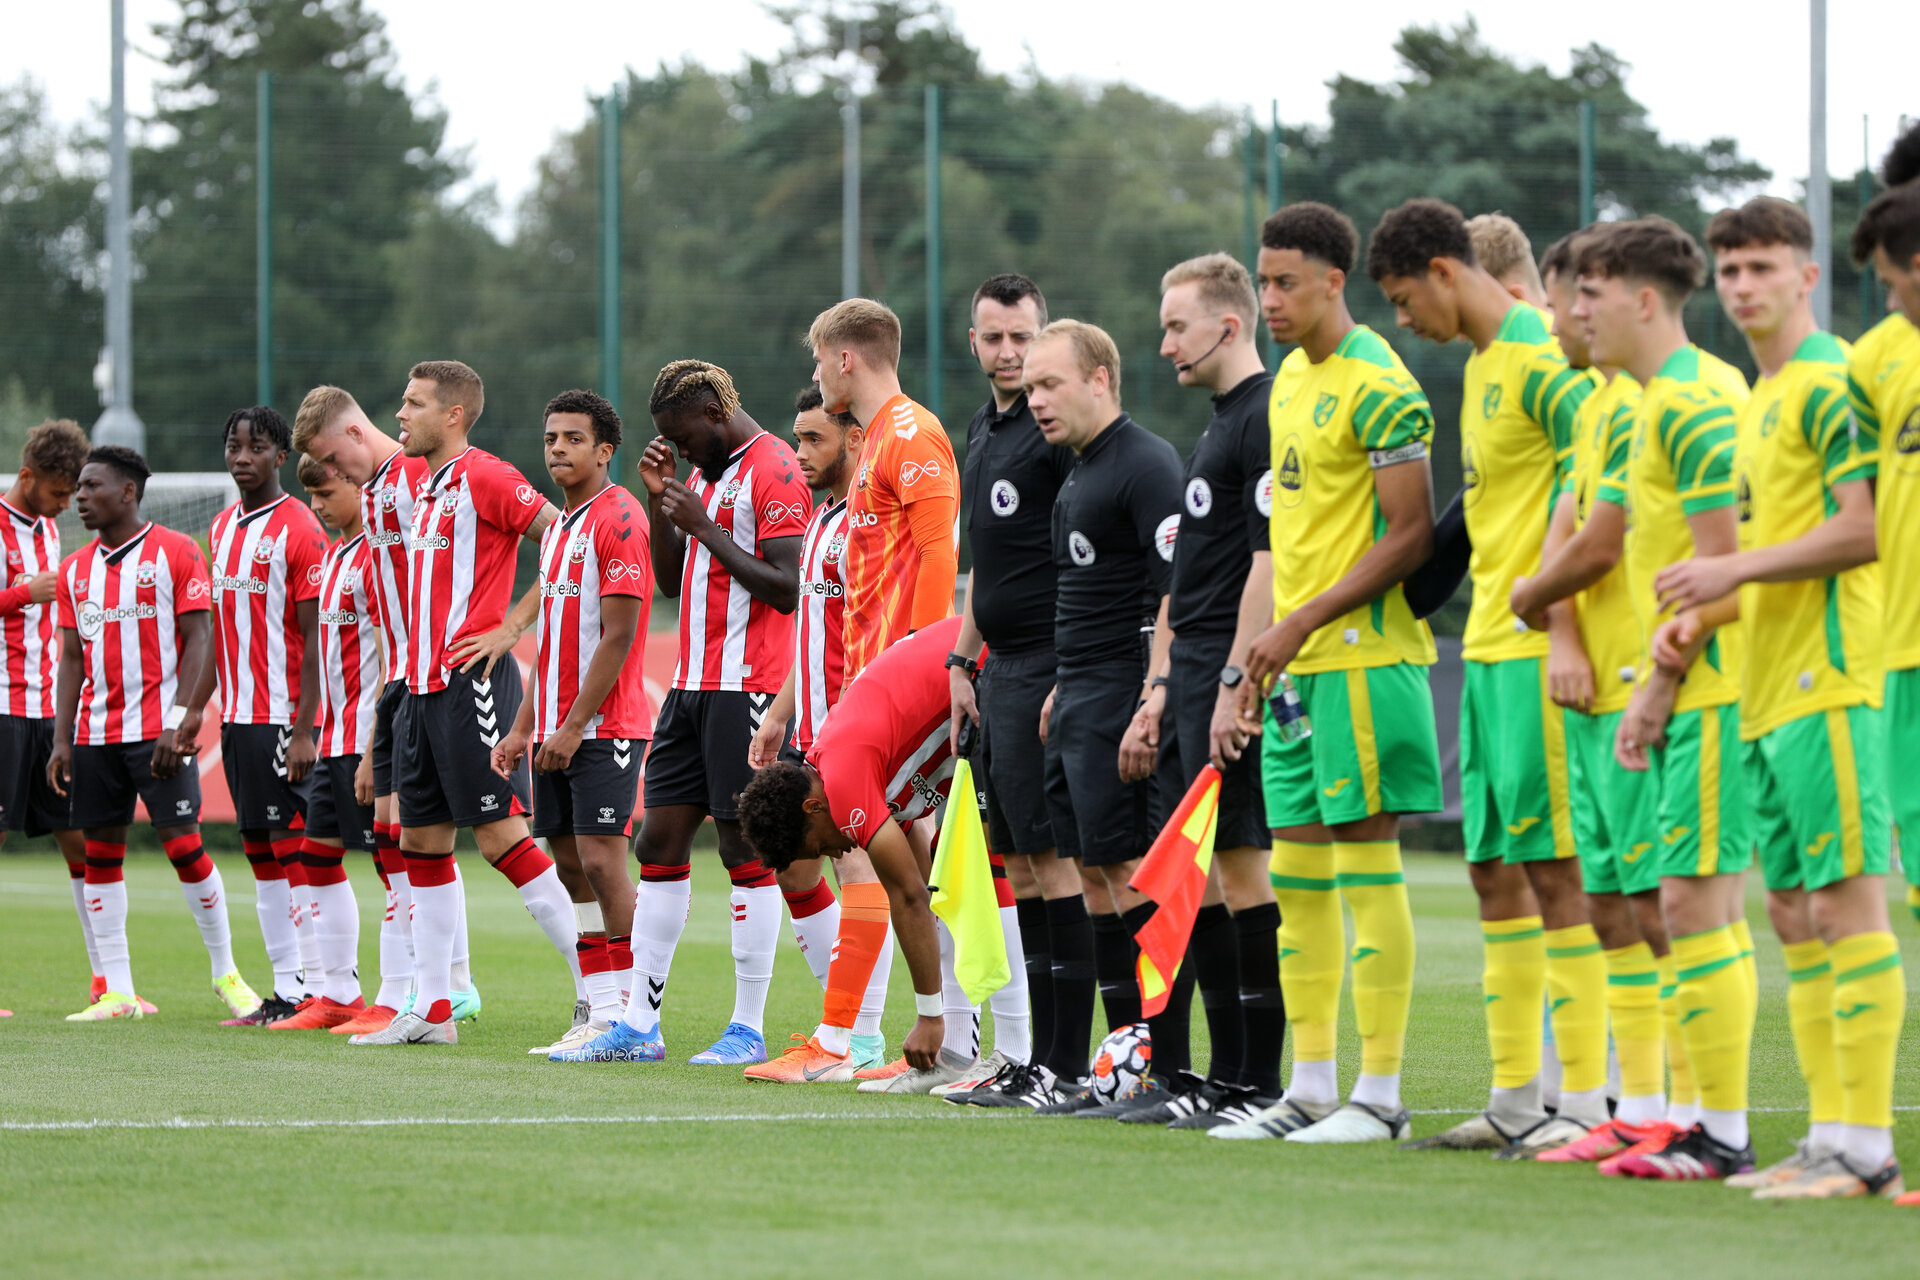 Southampton B v Norwich City U23, Premier League 2, Division 2, Staplewood Campus, Marchwood, Southampton Picture: Chris Moorhouse  Sunday 15th August 2021